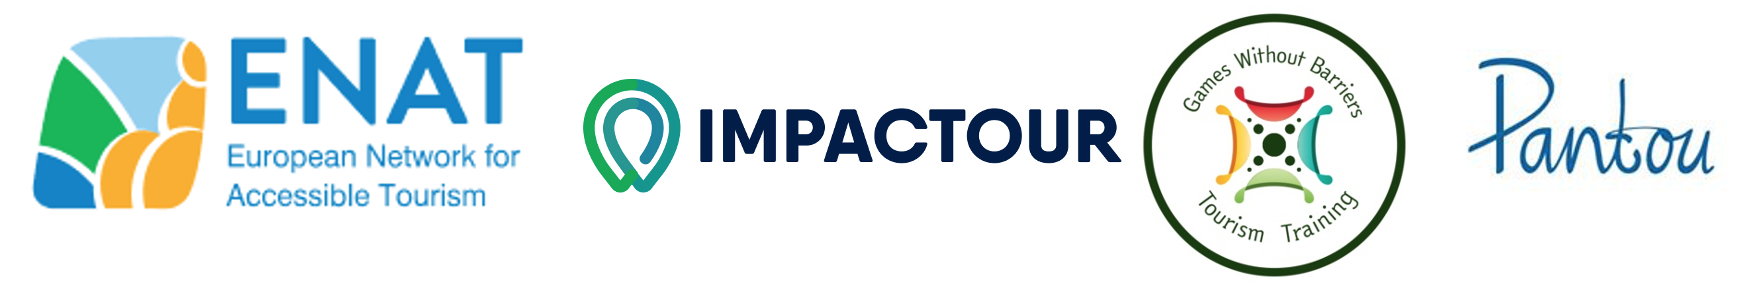 logos of ENAT, IMPACTOUR, Games Without Barriers and Pantou